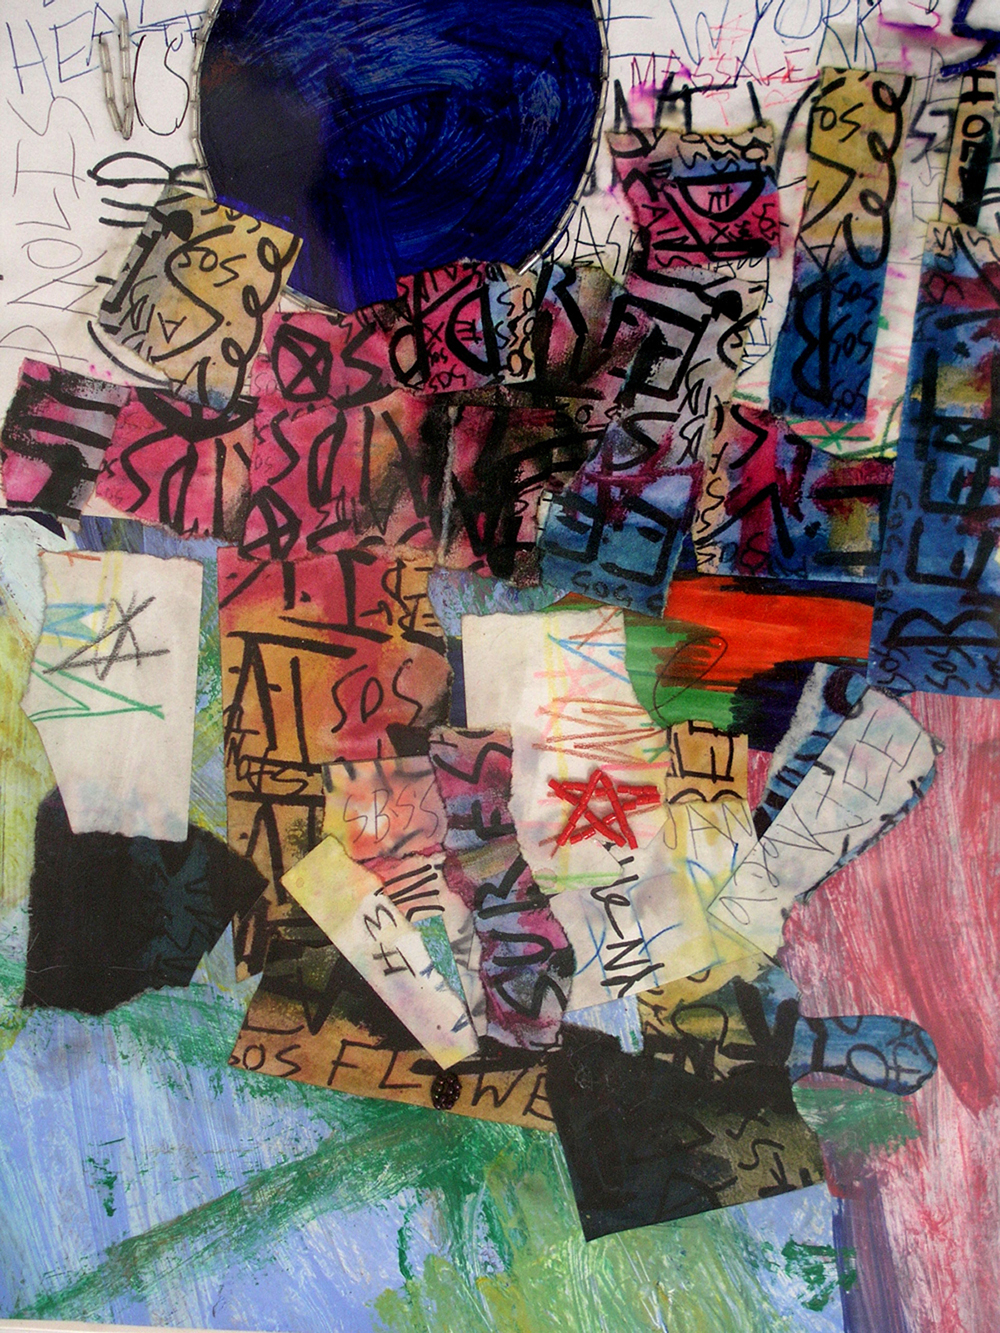 ART STAR collage copy_edited-1.jpg